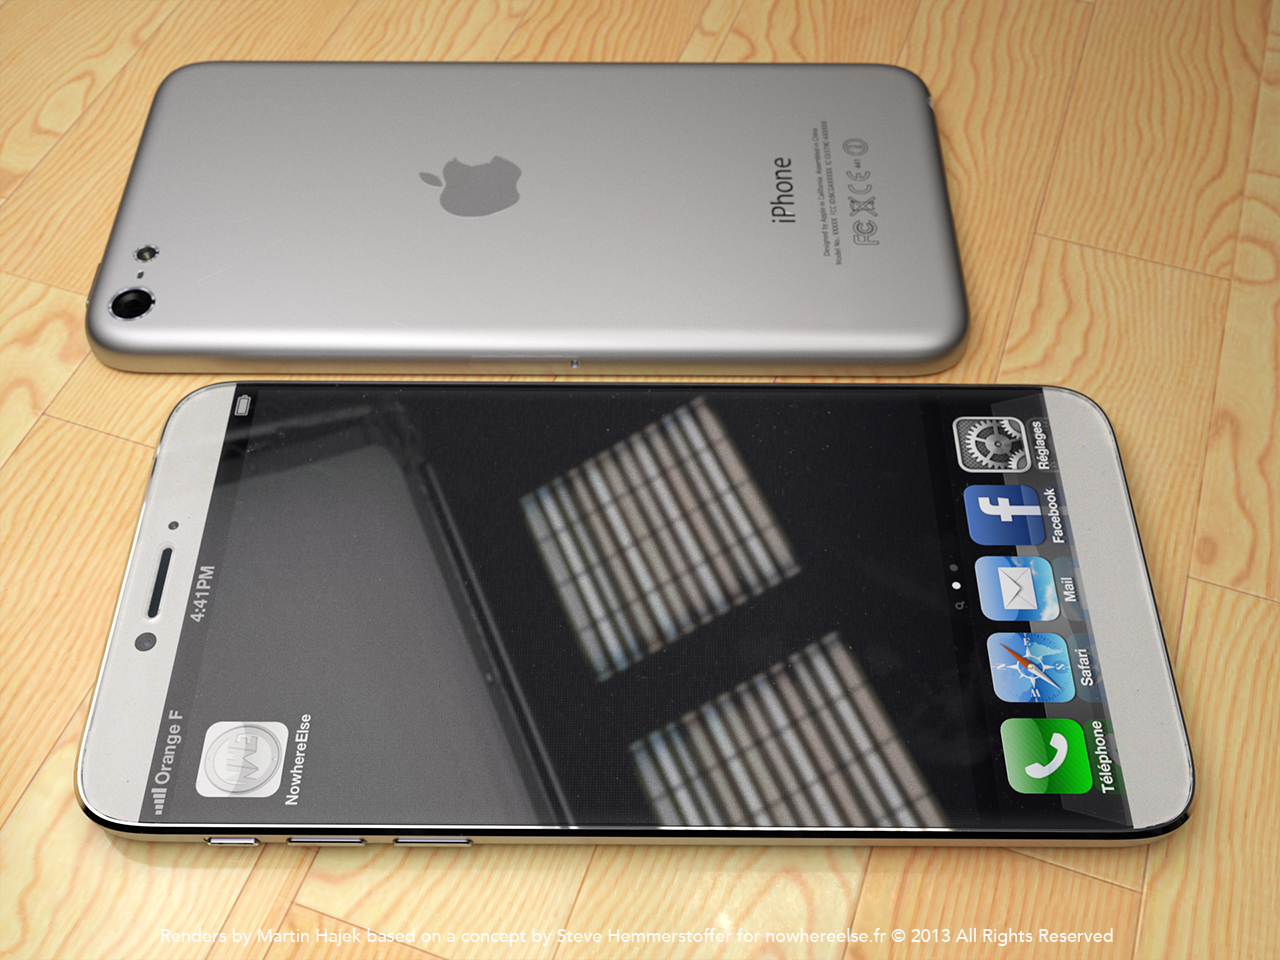 Rumors Continue About Larger iPhone 6 and iPad